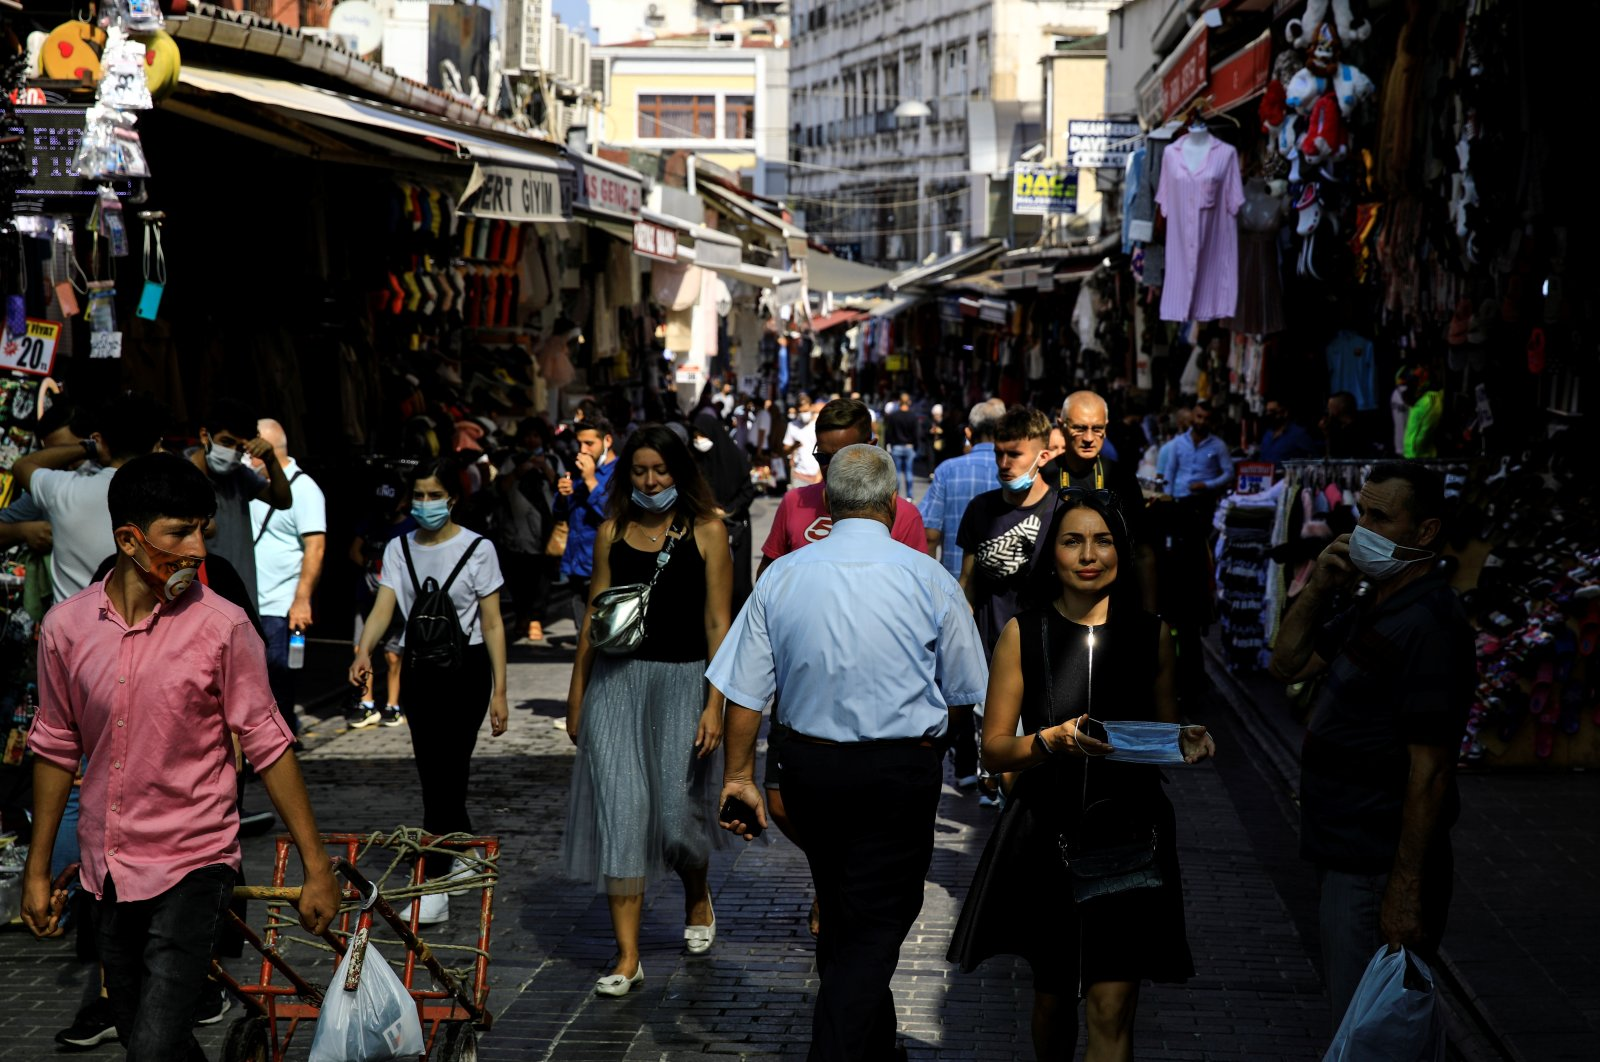 People shop in the Eminönü district in Istanbul, Turkey, Sept. 24, 2020. (Reuters Photo)